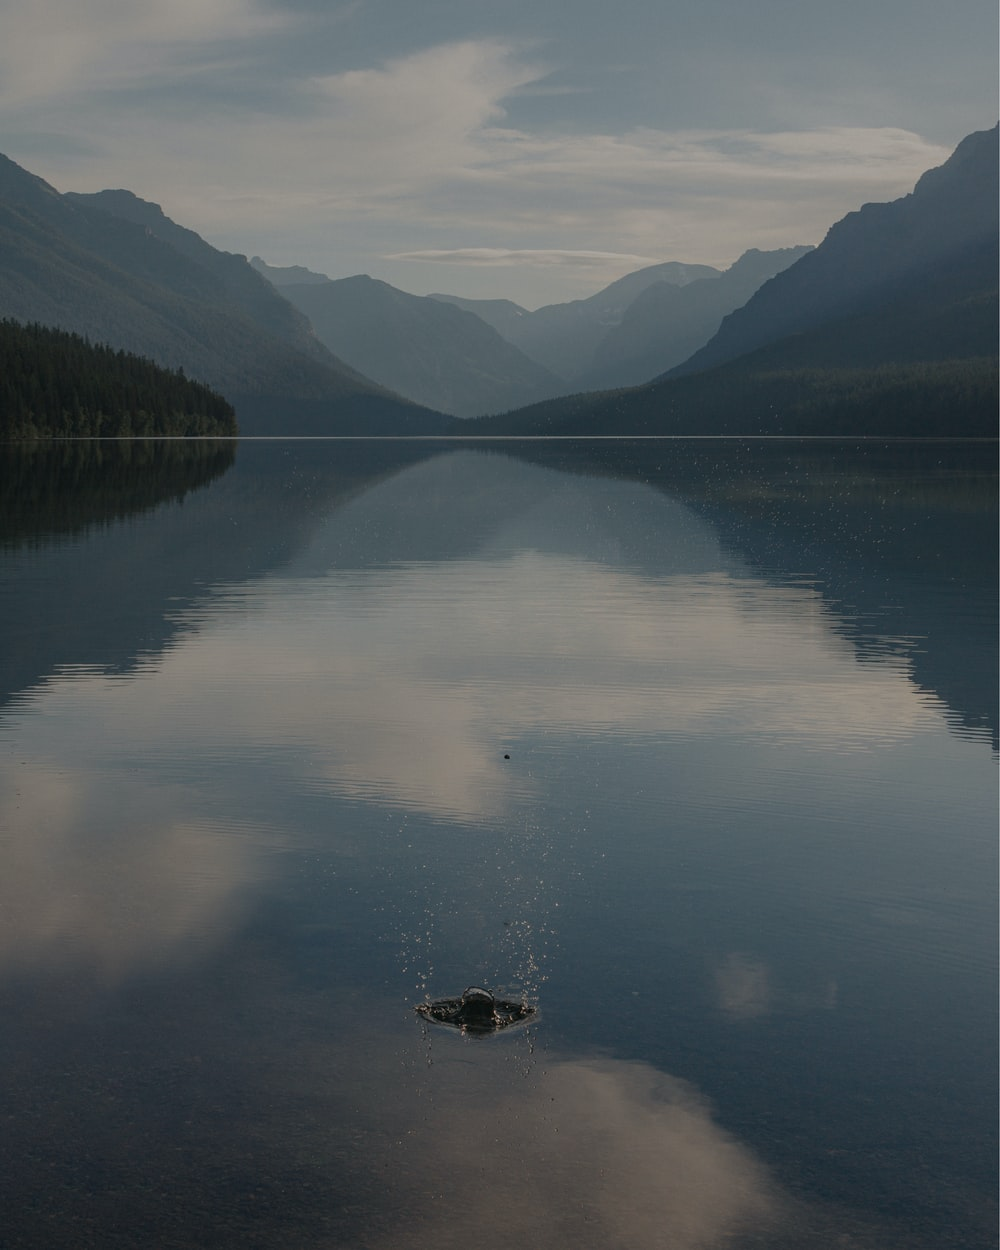 body of water near mountains during daytime